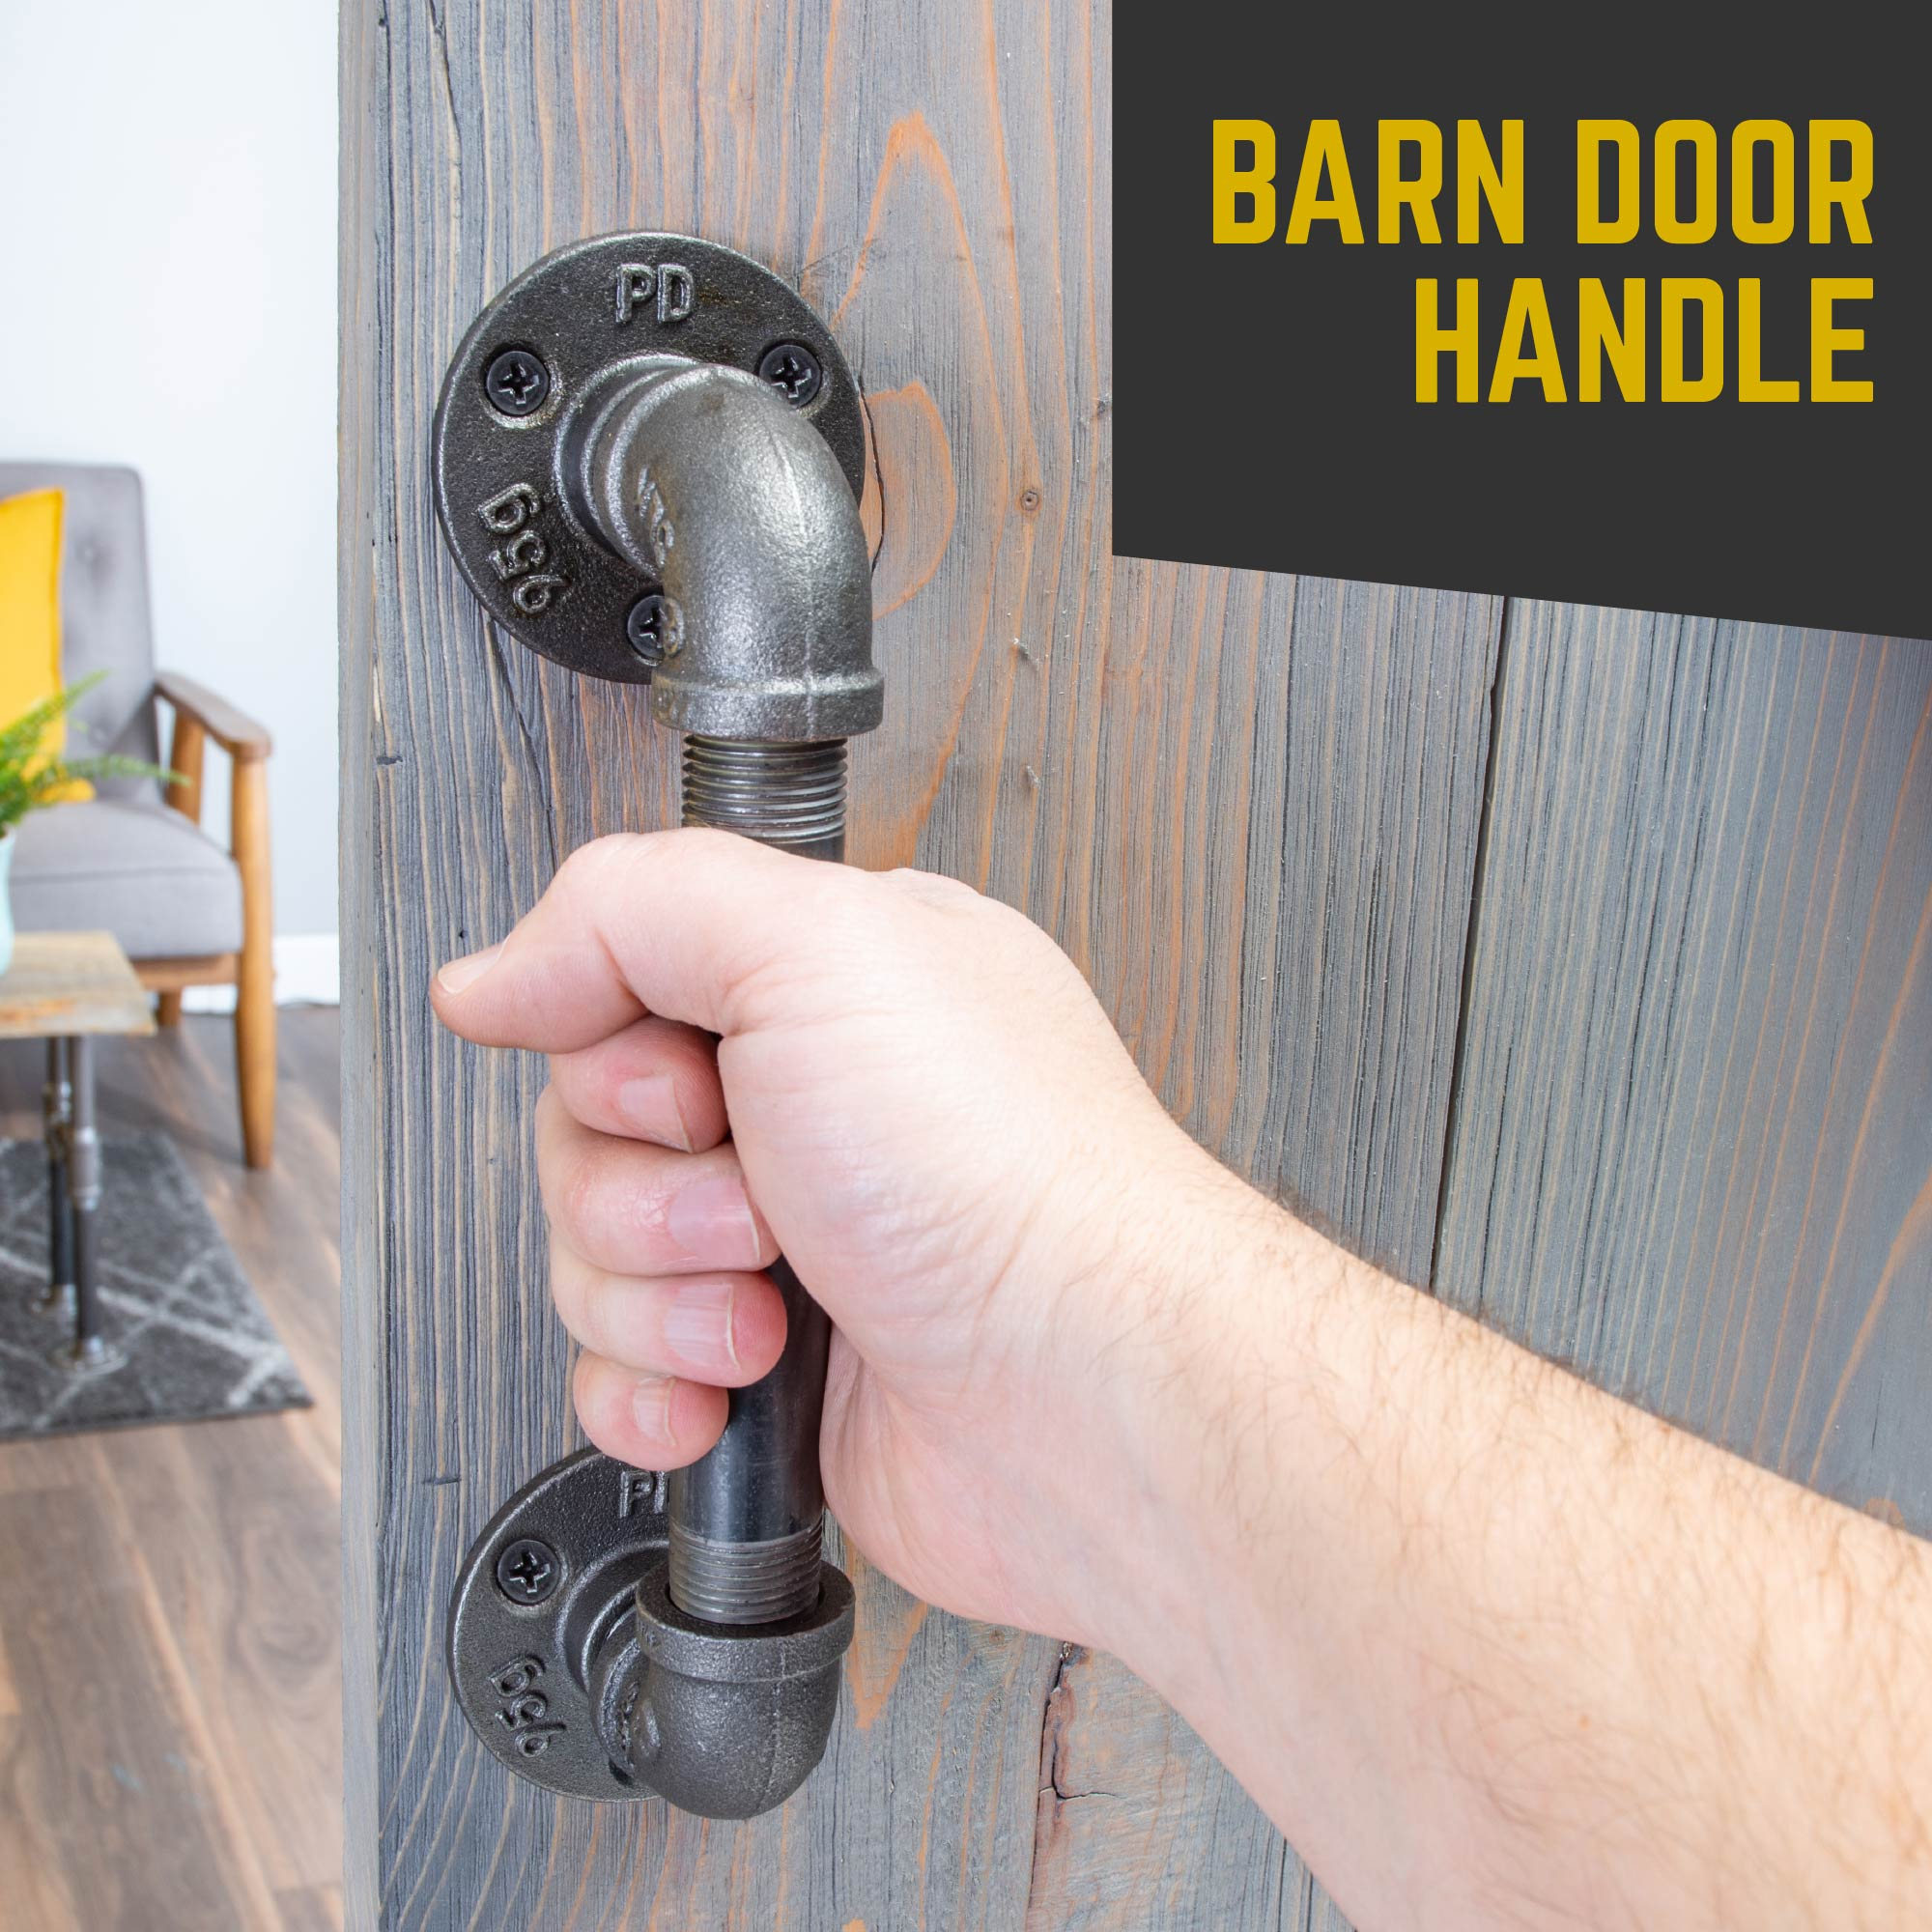 1/2 in. Barn Door Handle - Mini Flange - 9.875 L